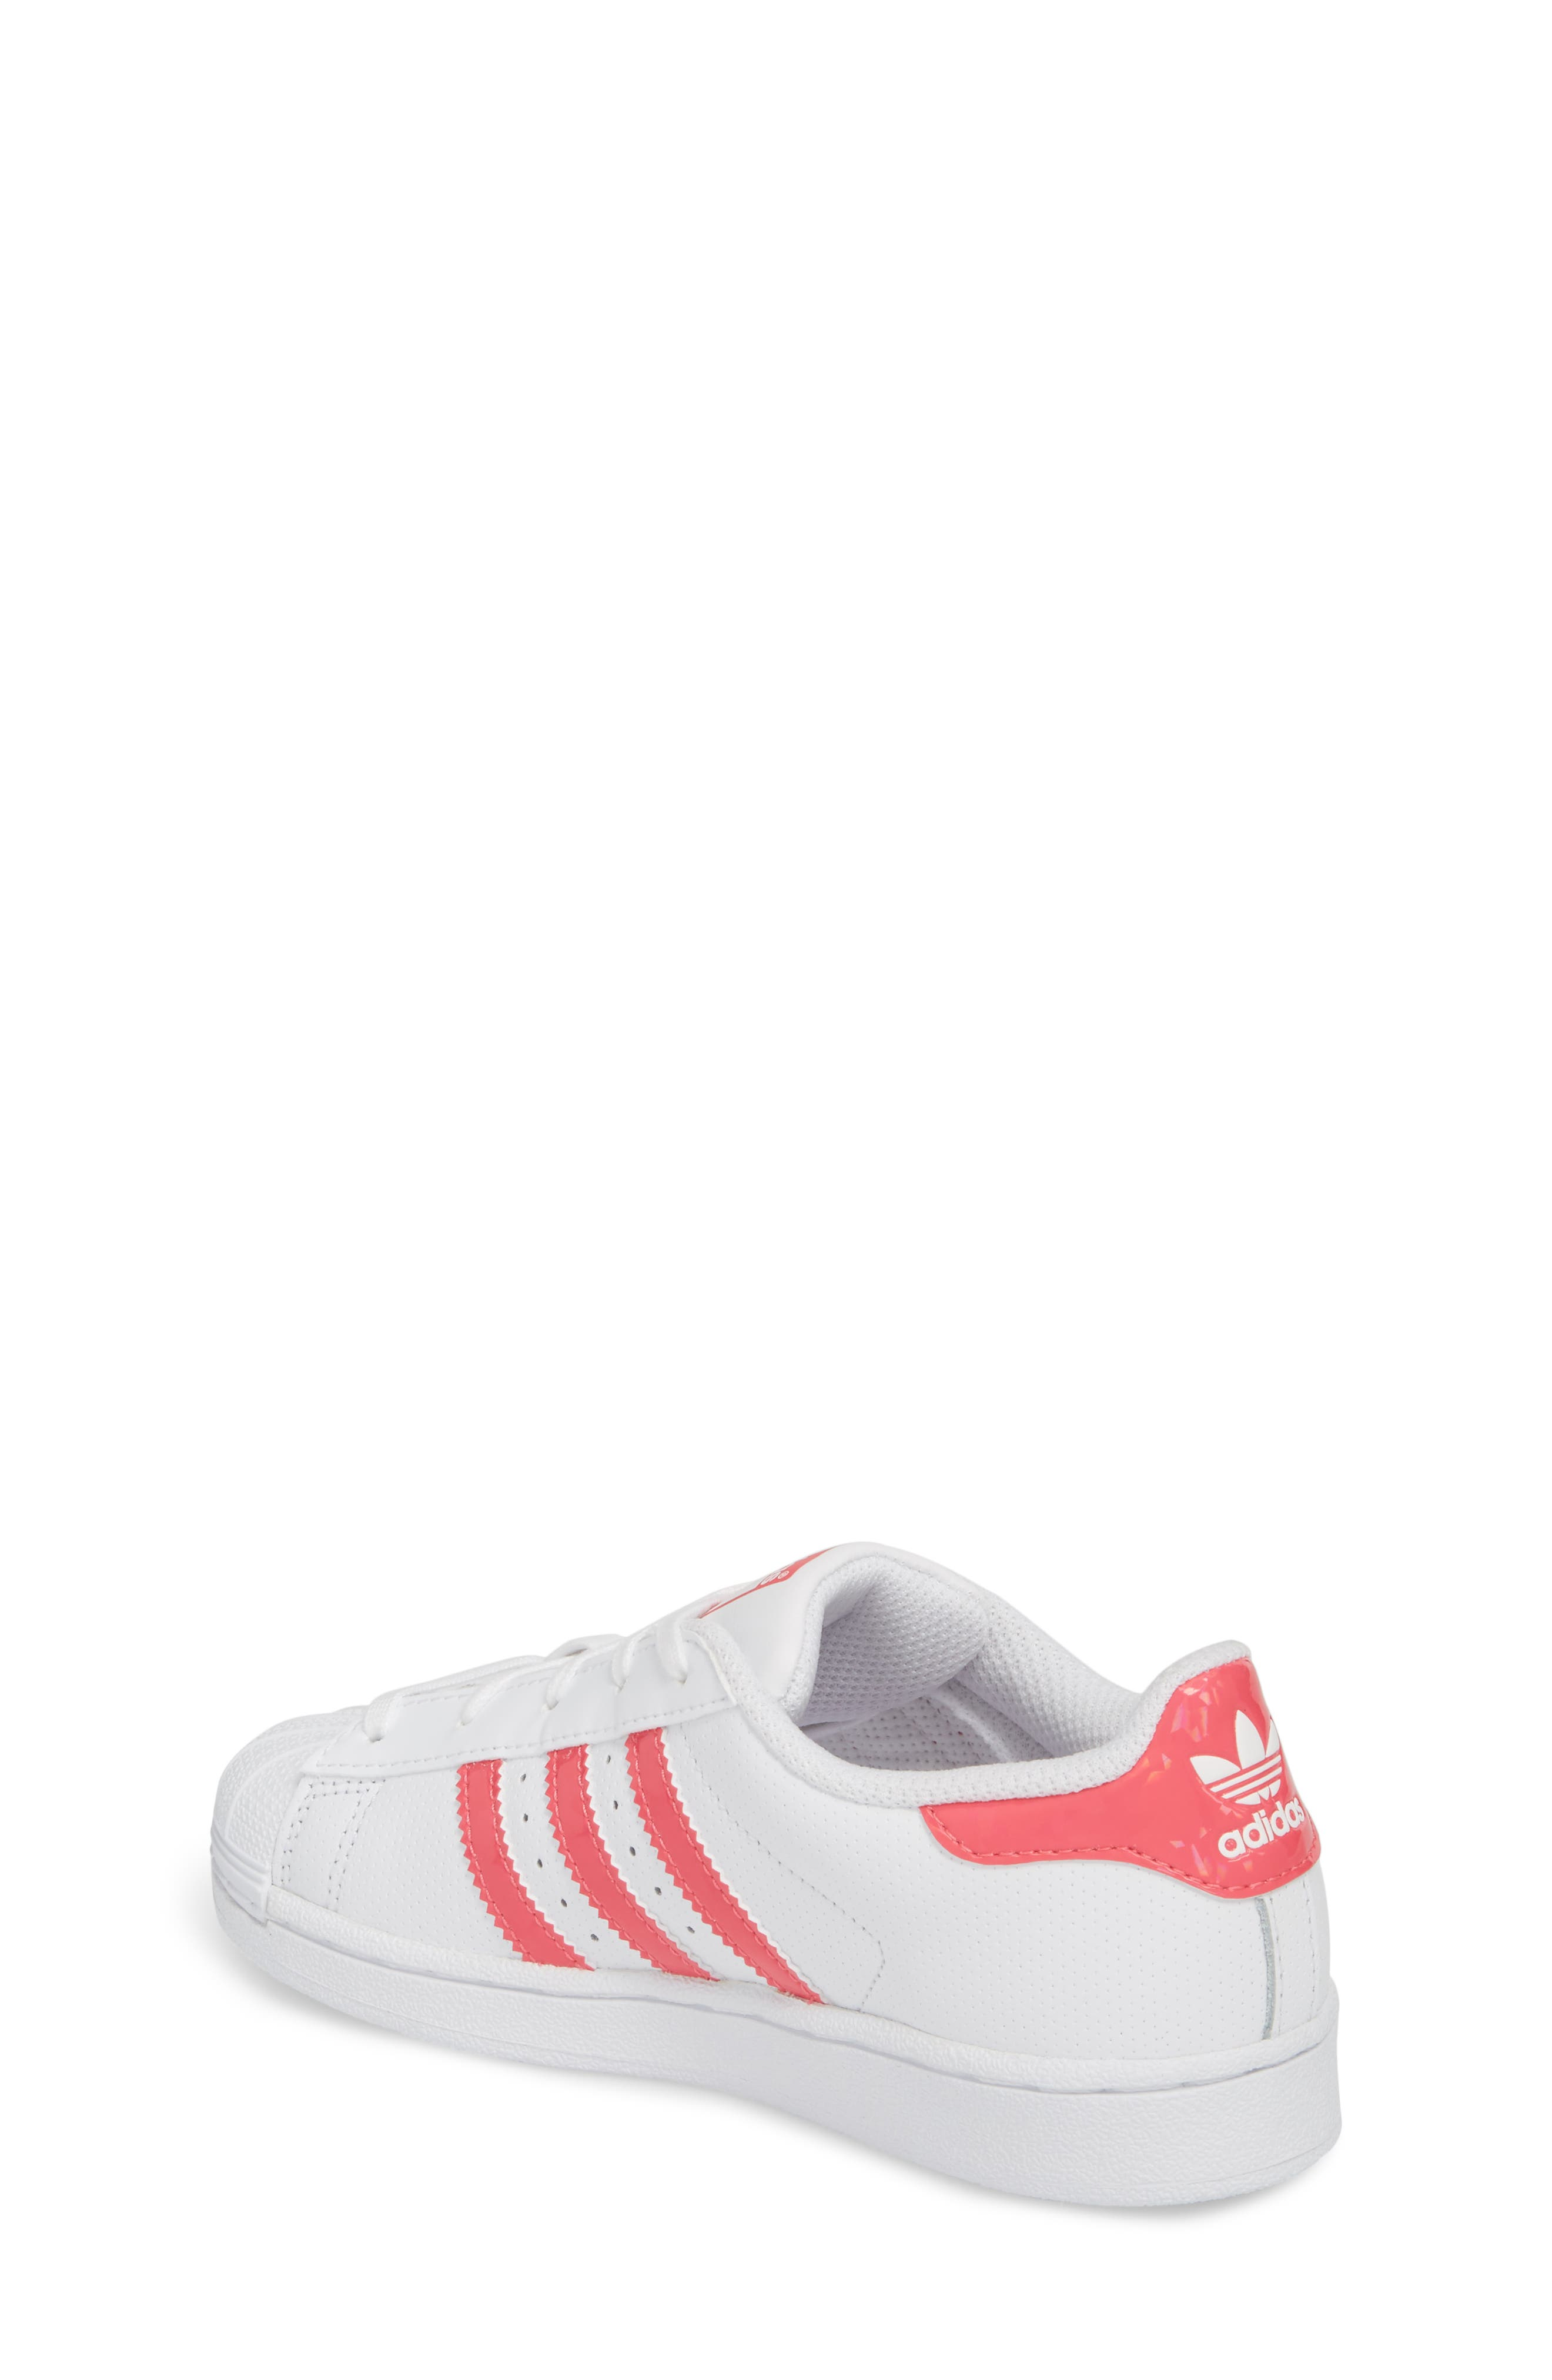 Superstar Perforated Low Top Sneaker,                             Alternate thumbnail 2, color,